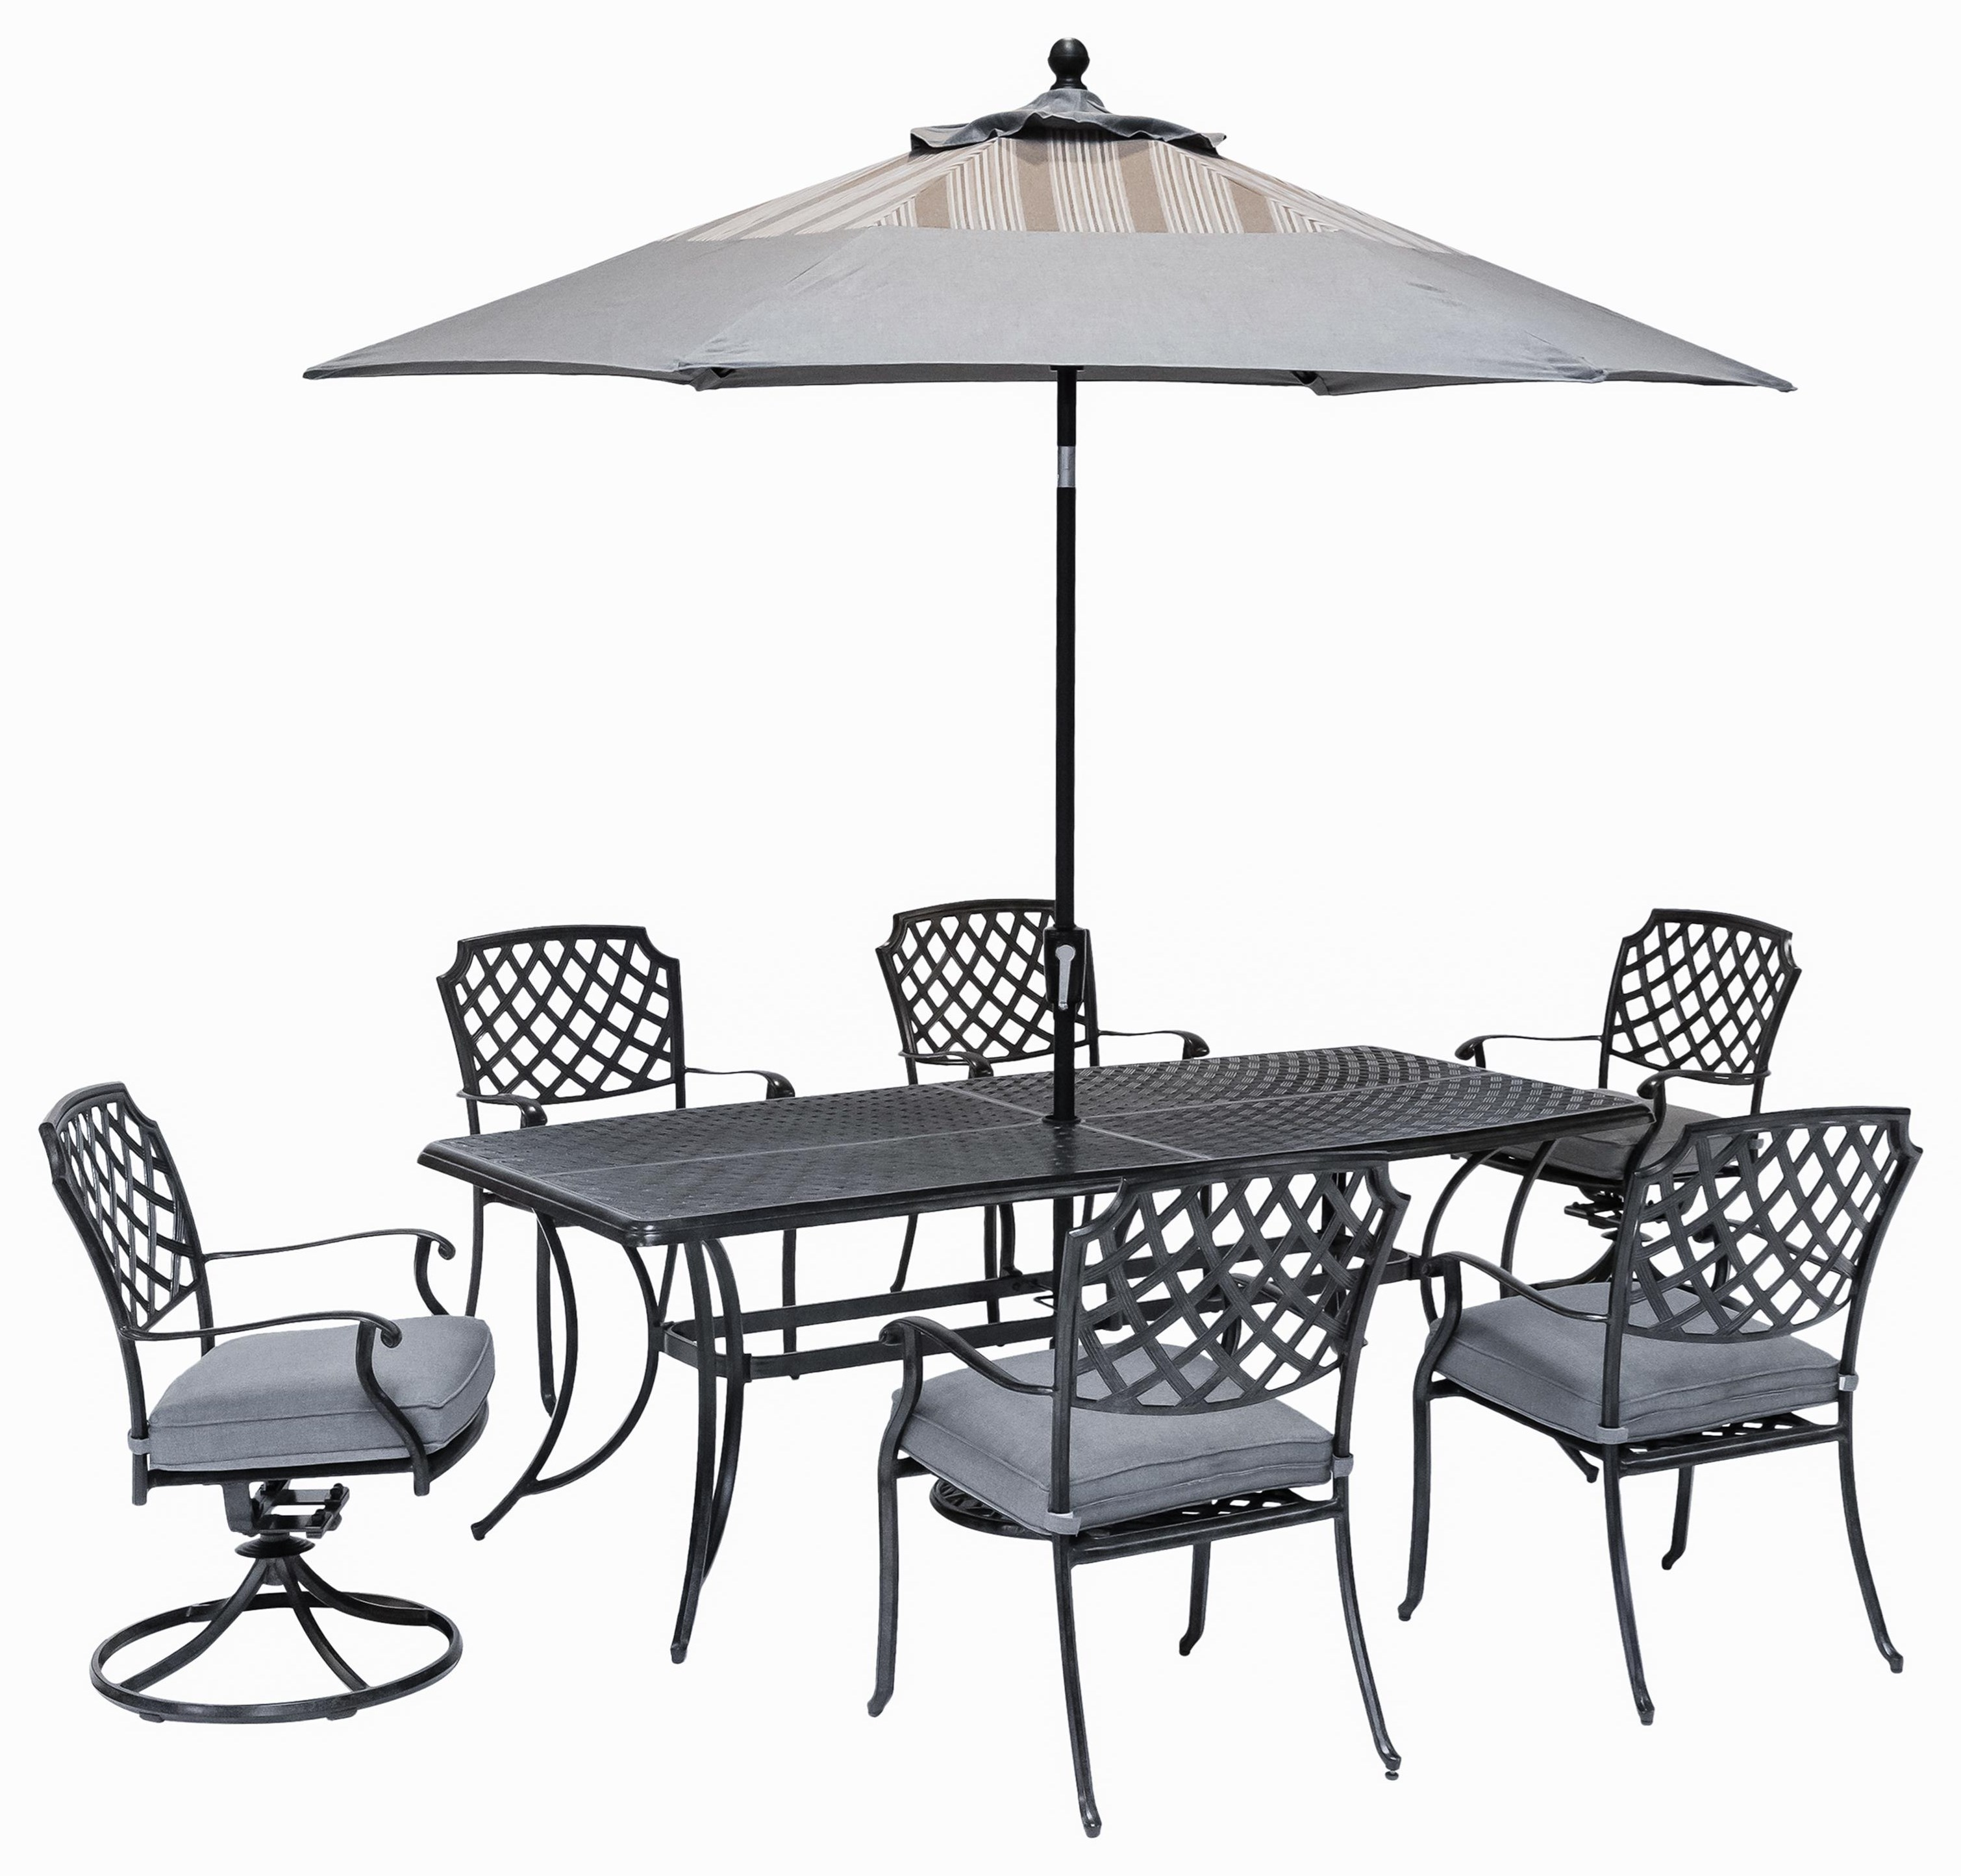 Madison TABLE, 4 DINING Chairs And 2 SWIVEL Chairs by Apricity Outdoor at Johnny Janosik